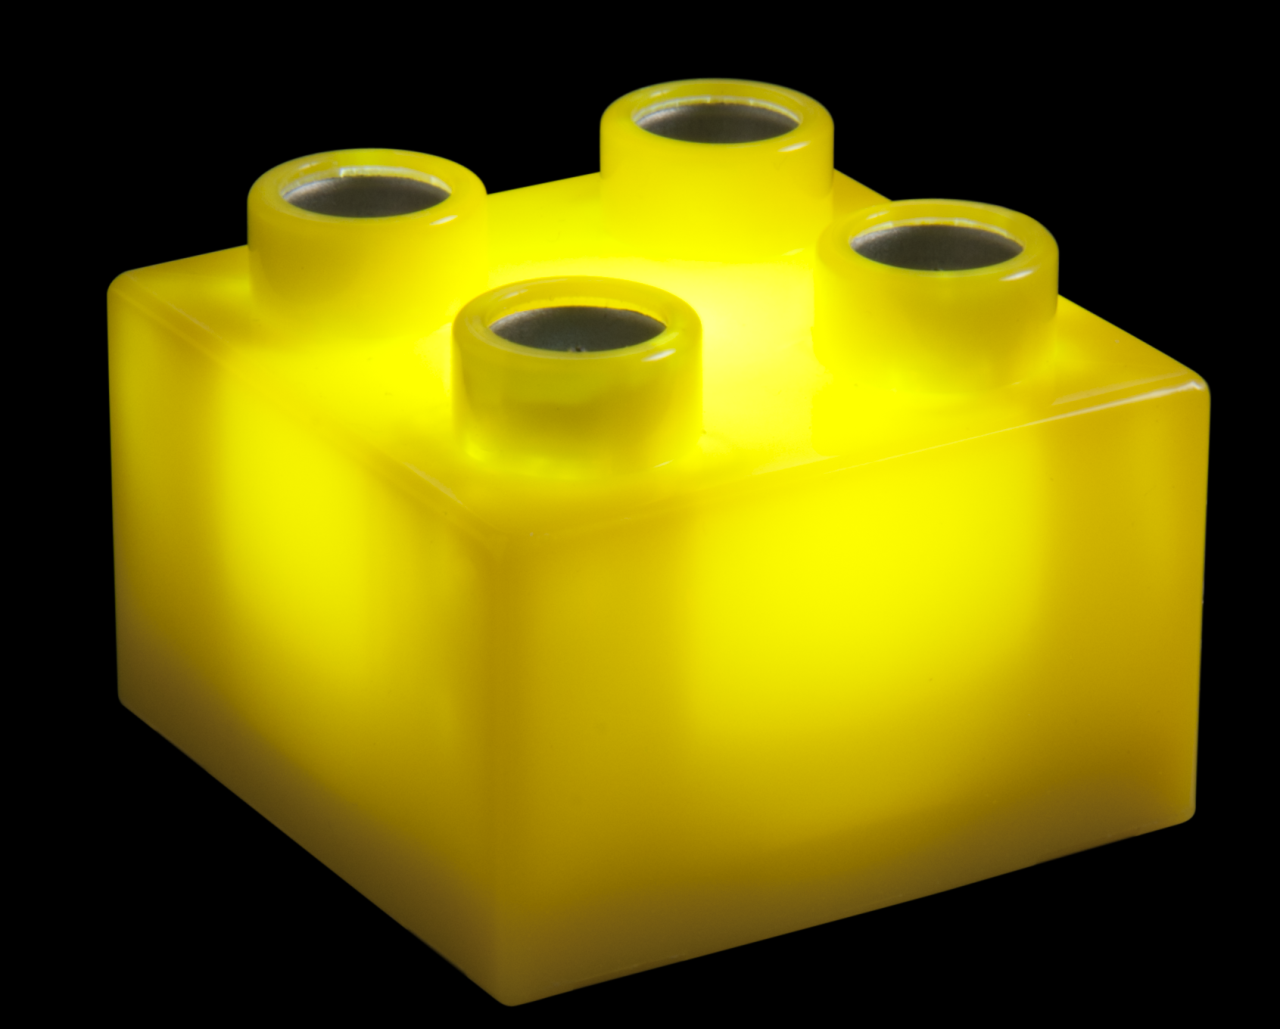 STAX® Expansion Pack 2x2 Yellow - DUPLO®-kompatibel